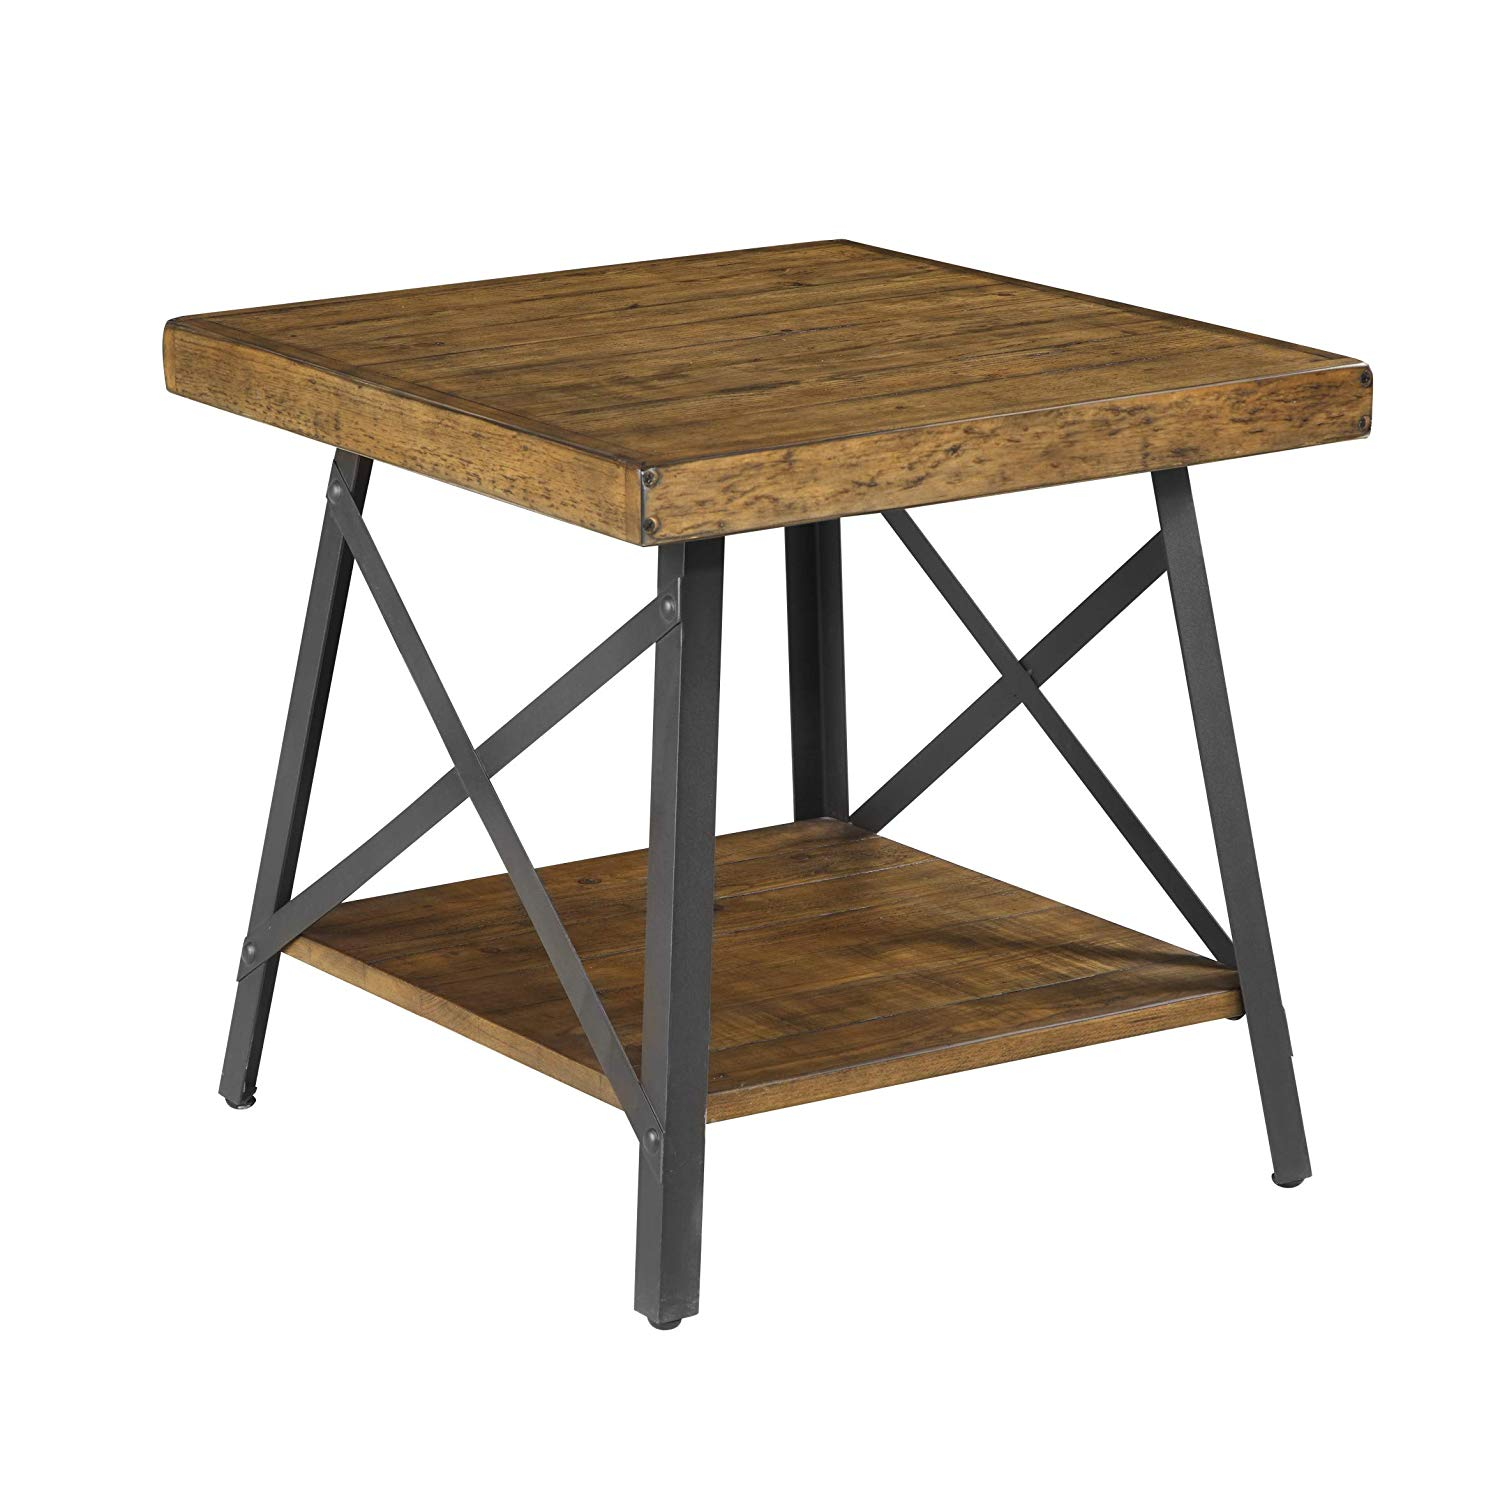 emerald home chandler rustic wood end table with solid better homes and gardens accent gray top metal base open storage shelf kitchen dining sofa side ikea west elm swing arm lamp